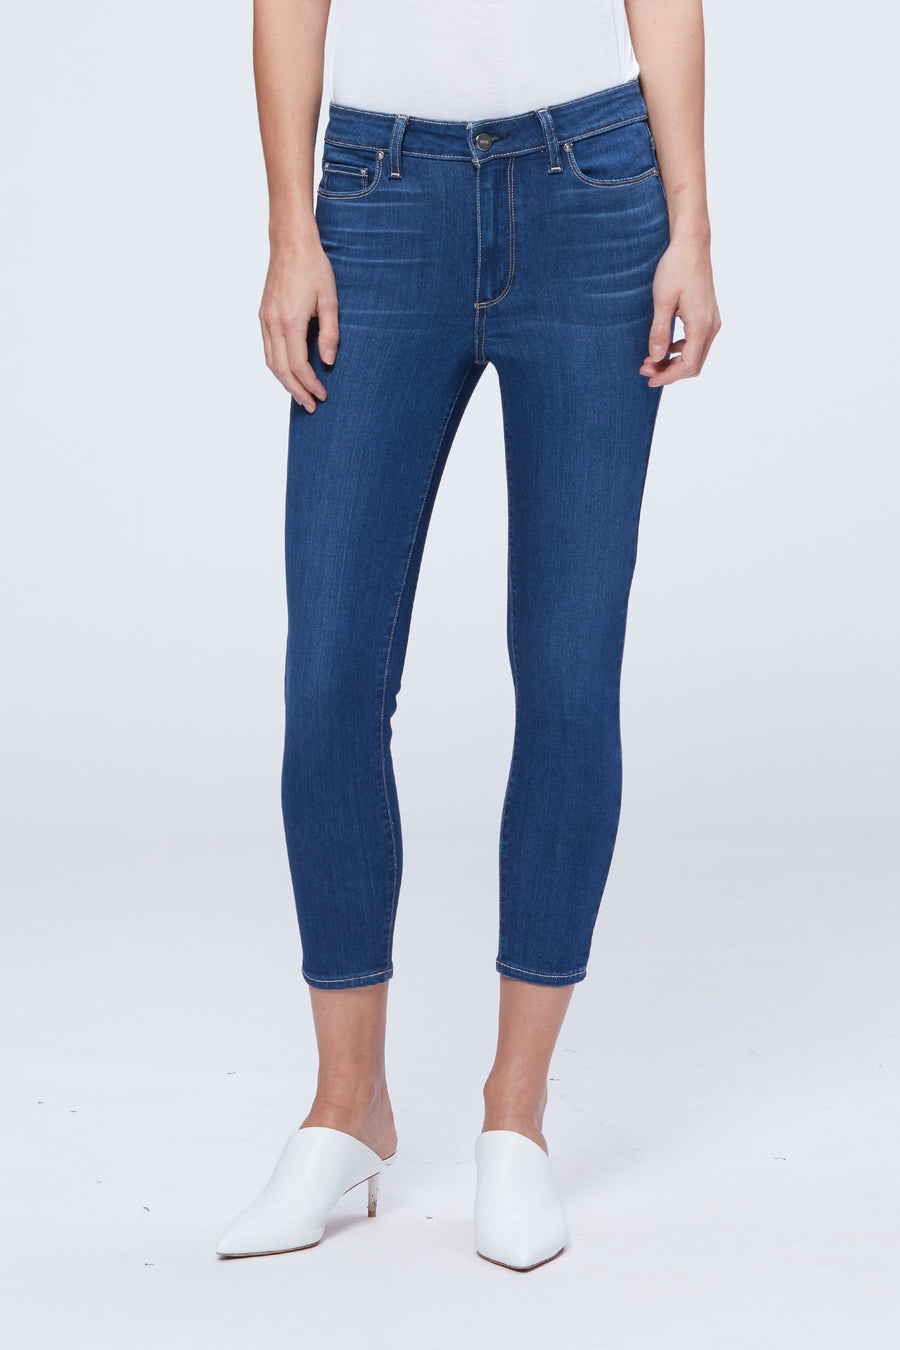 Paige Verdugo Crop Jeans in Cityscape